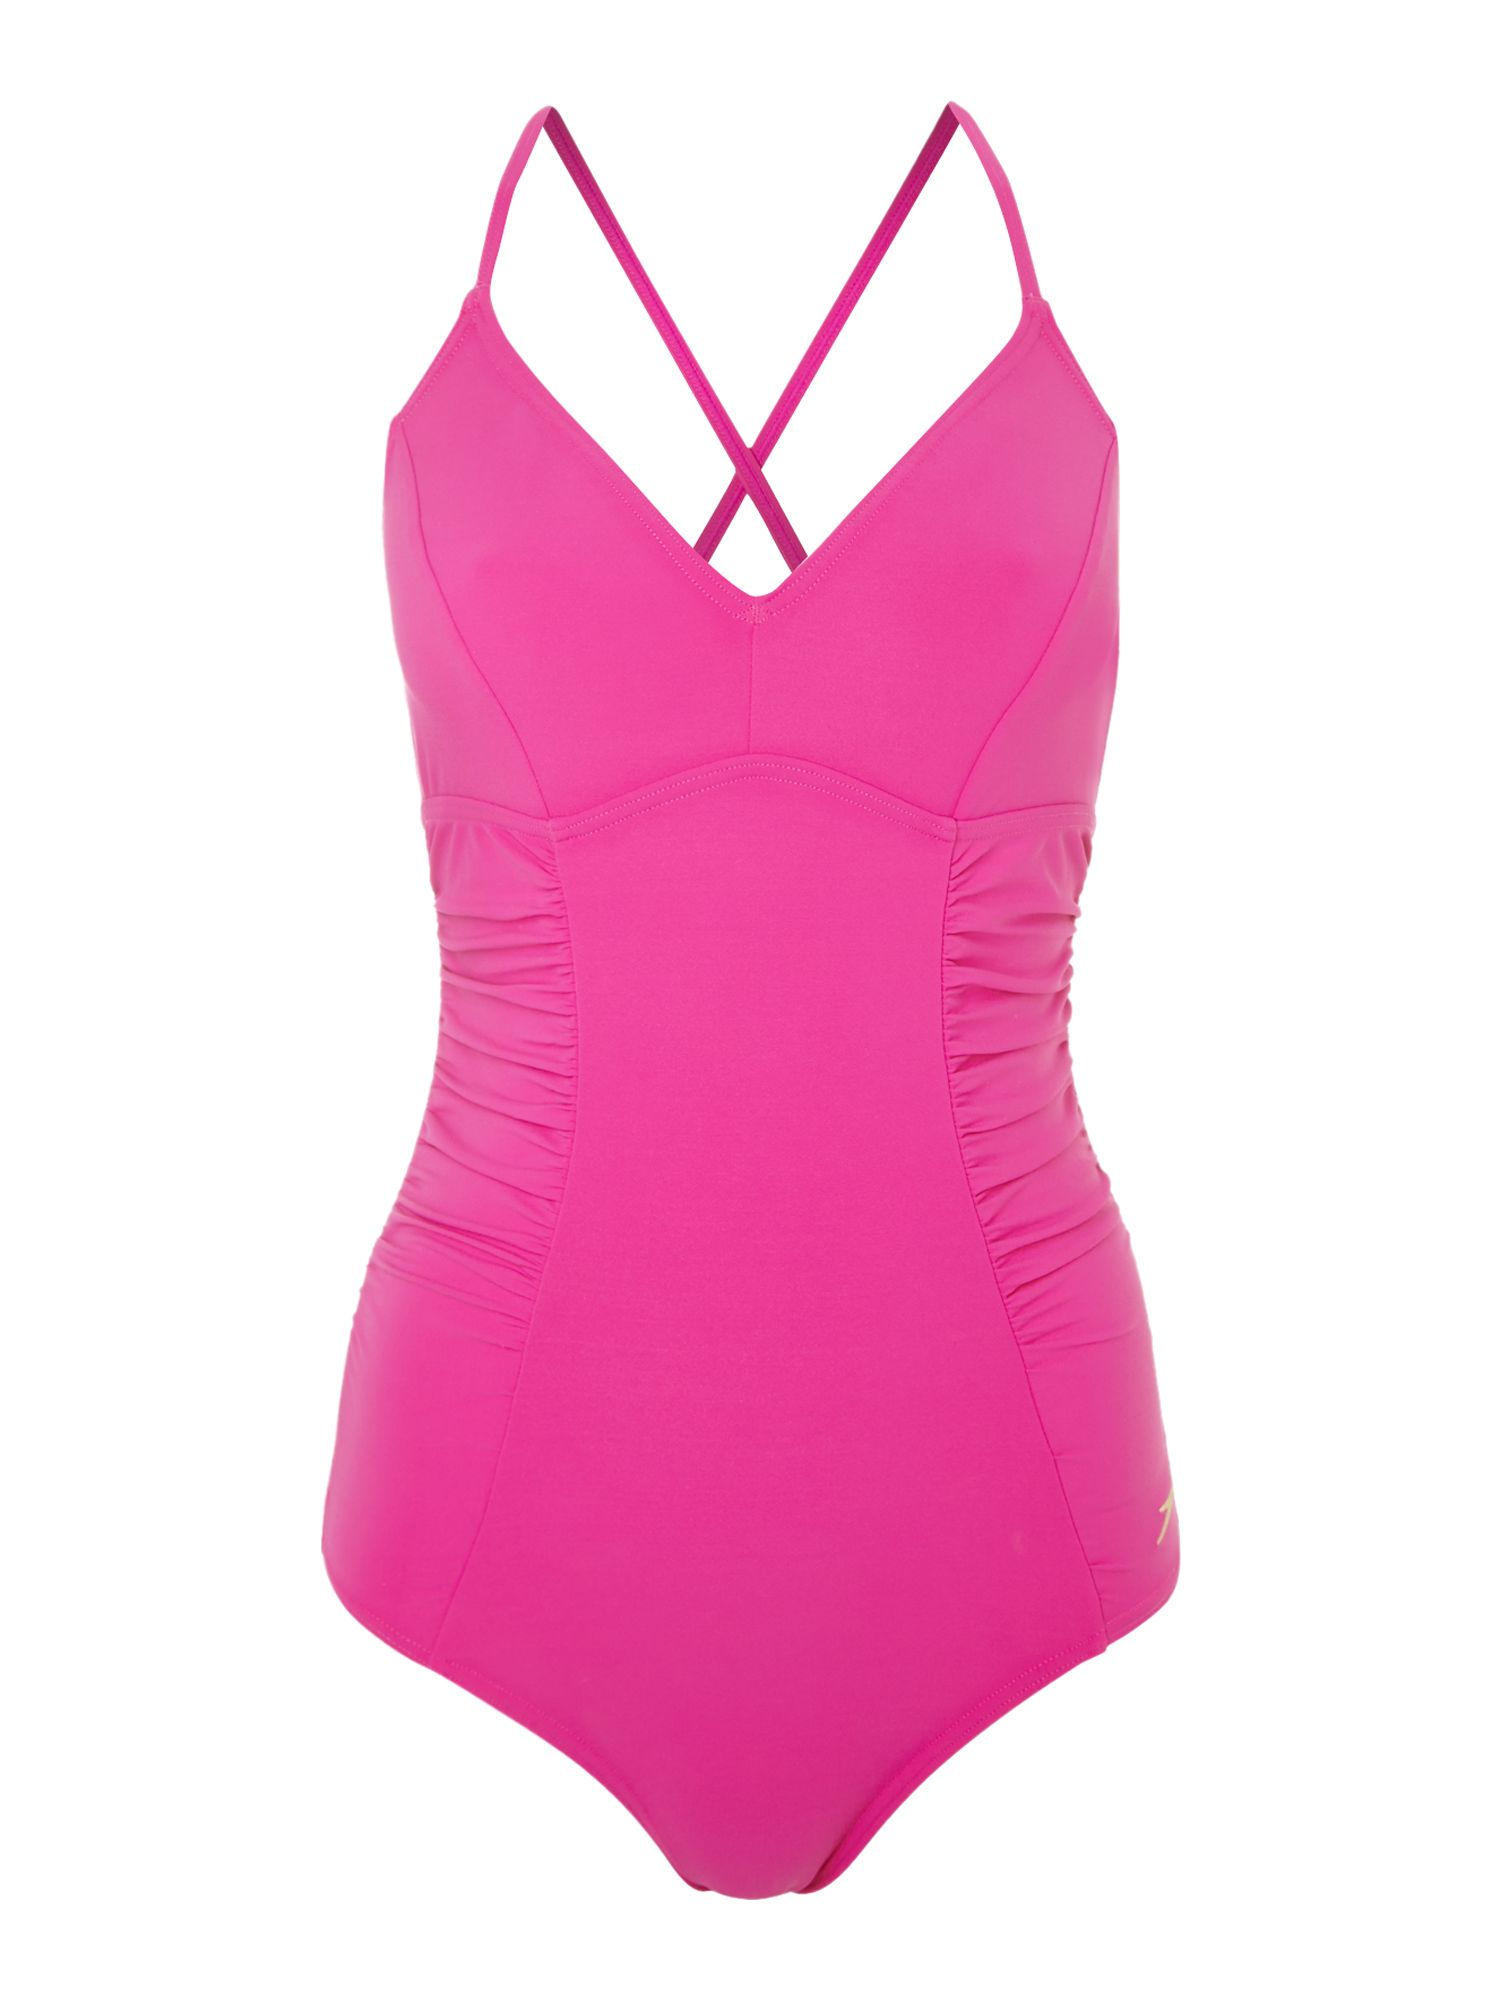 Premier spa shine swimsuit